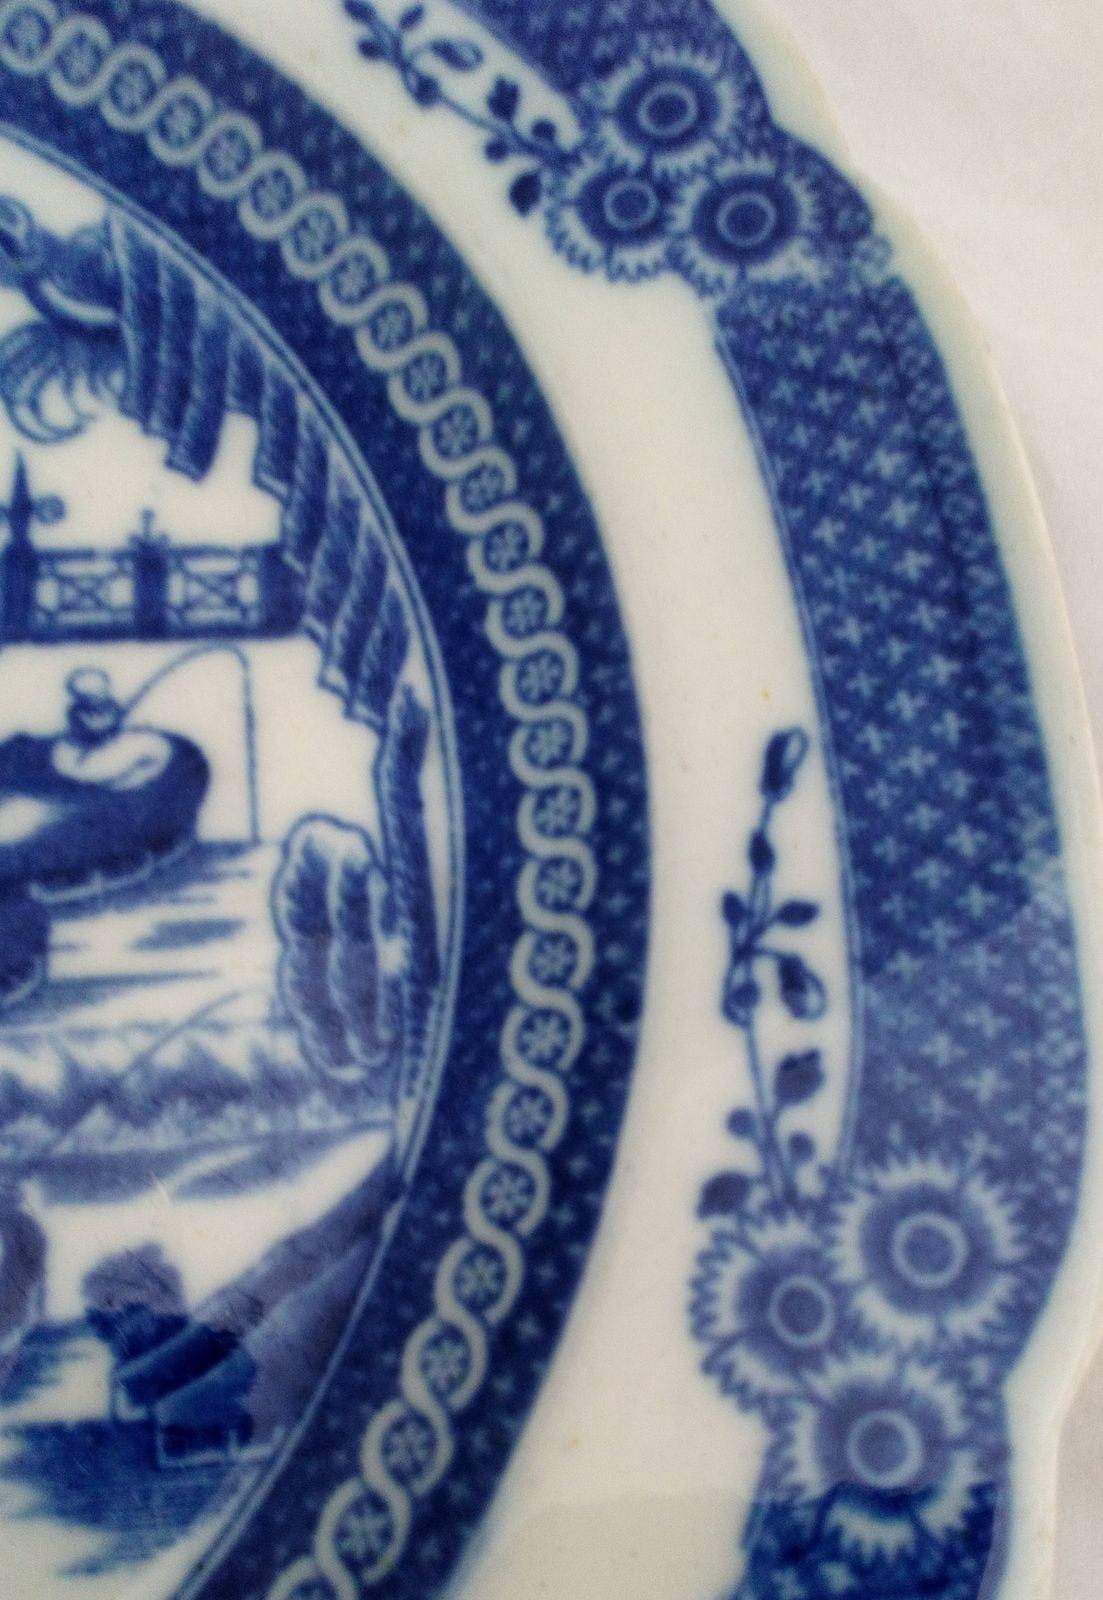 Pair of Antique Davenport Blue and White Transfer Printed Pearlware Plates with the Chinese Fishermen Pattern or Fishing Family Pattern circa 1795 to 1810.